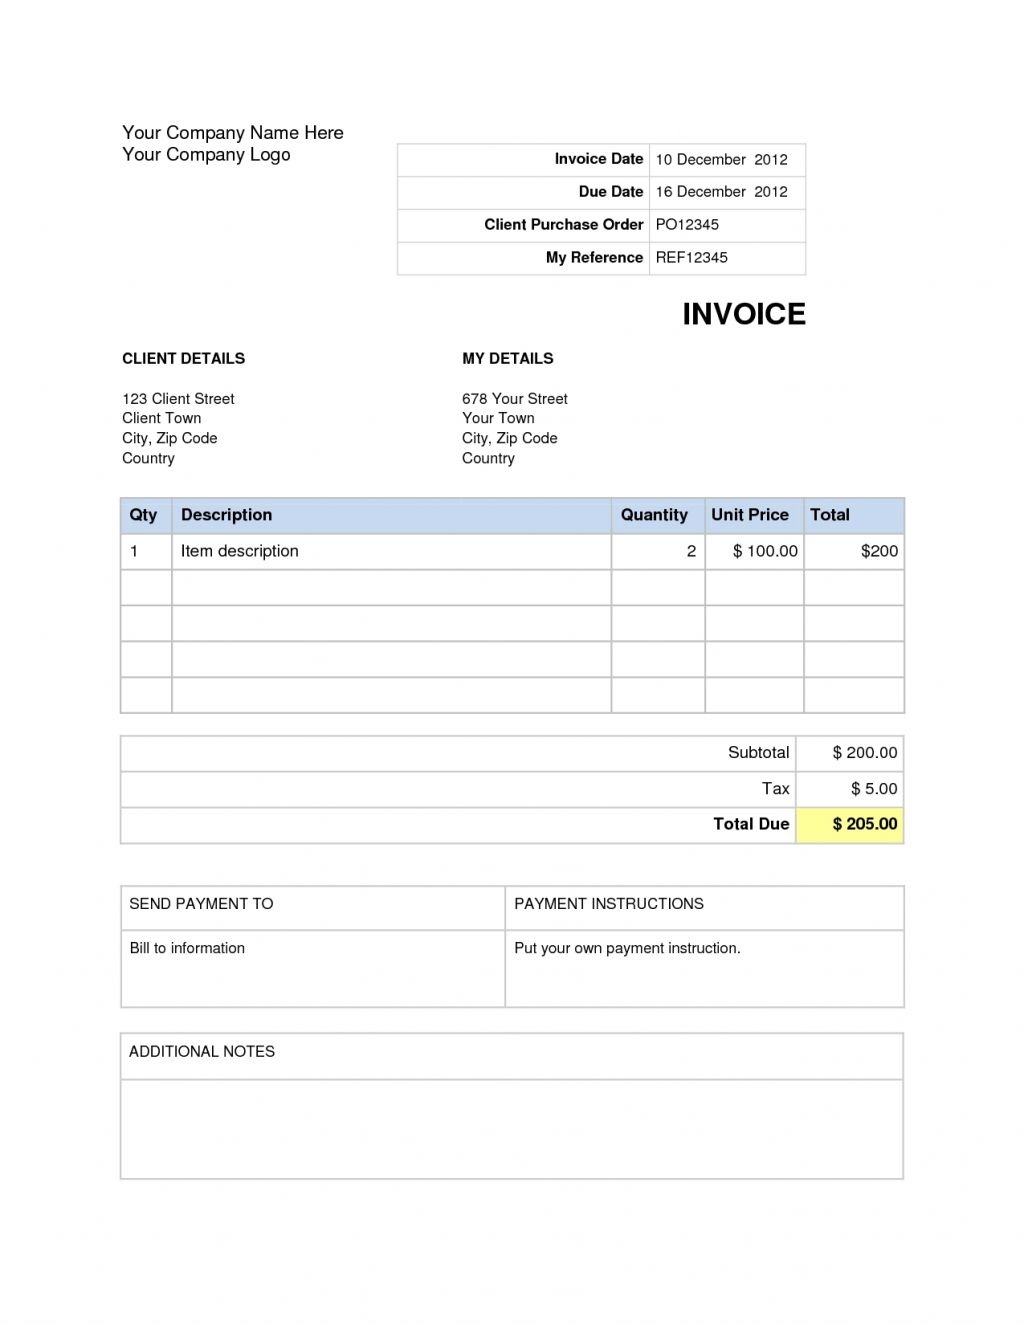 google docs spreadsheet invoice template wiseproof google docs invoices